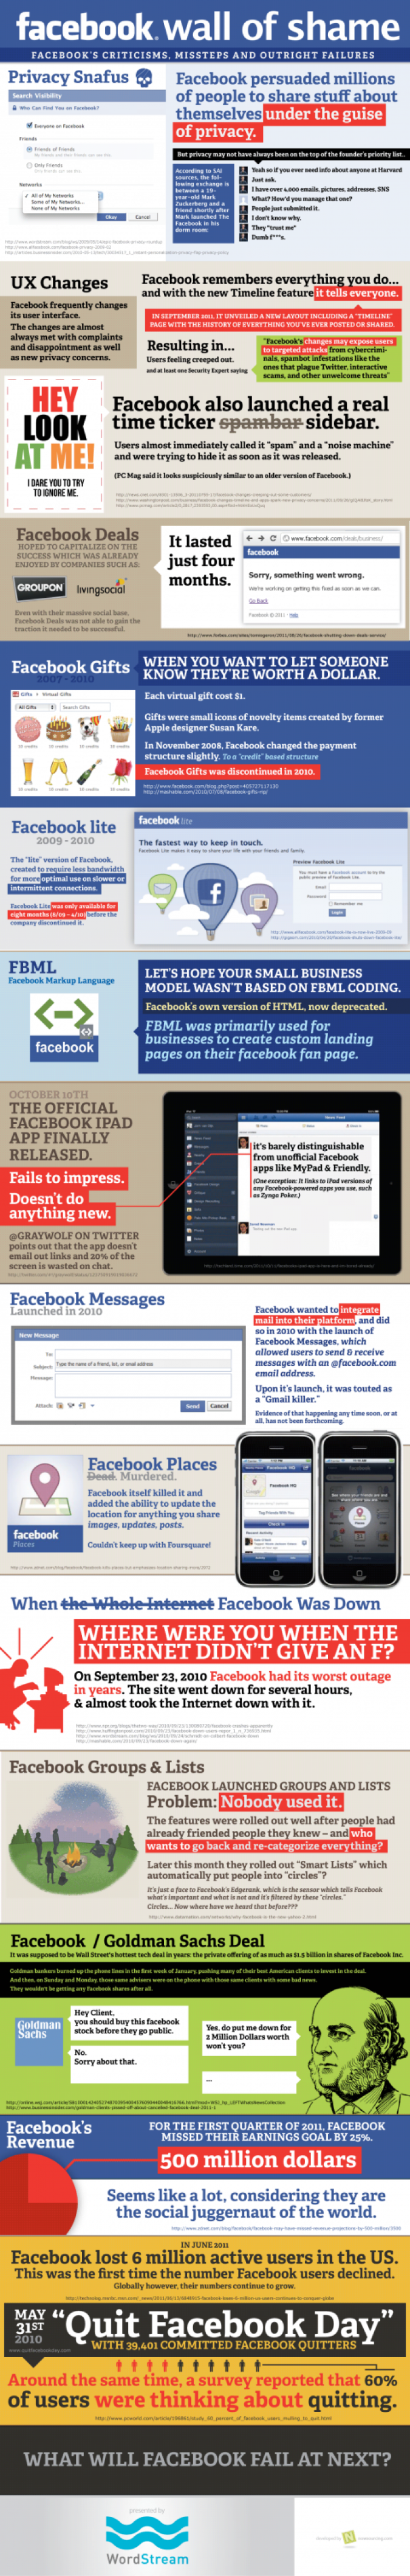 Infografik Facebook Wall of Shame